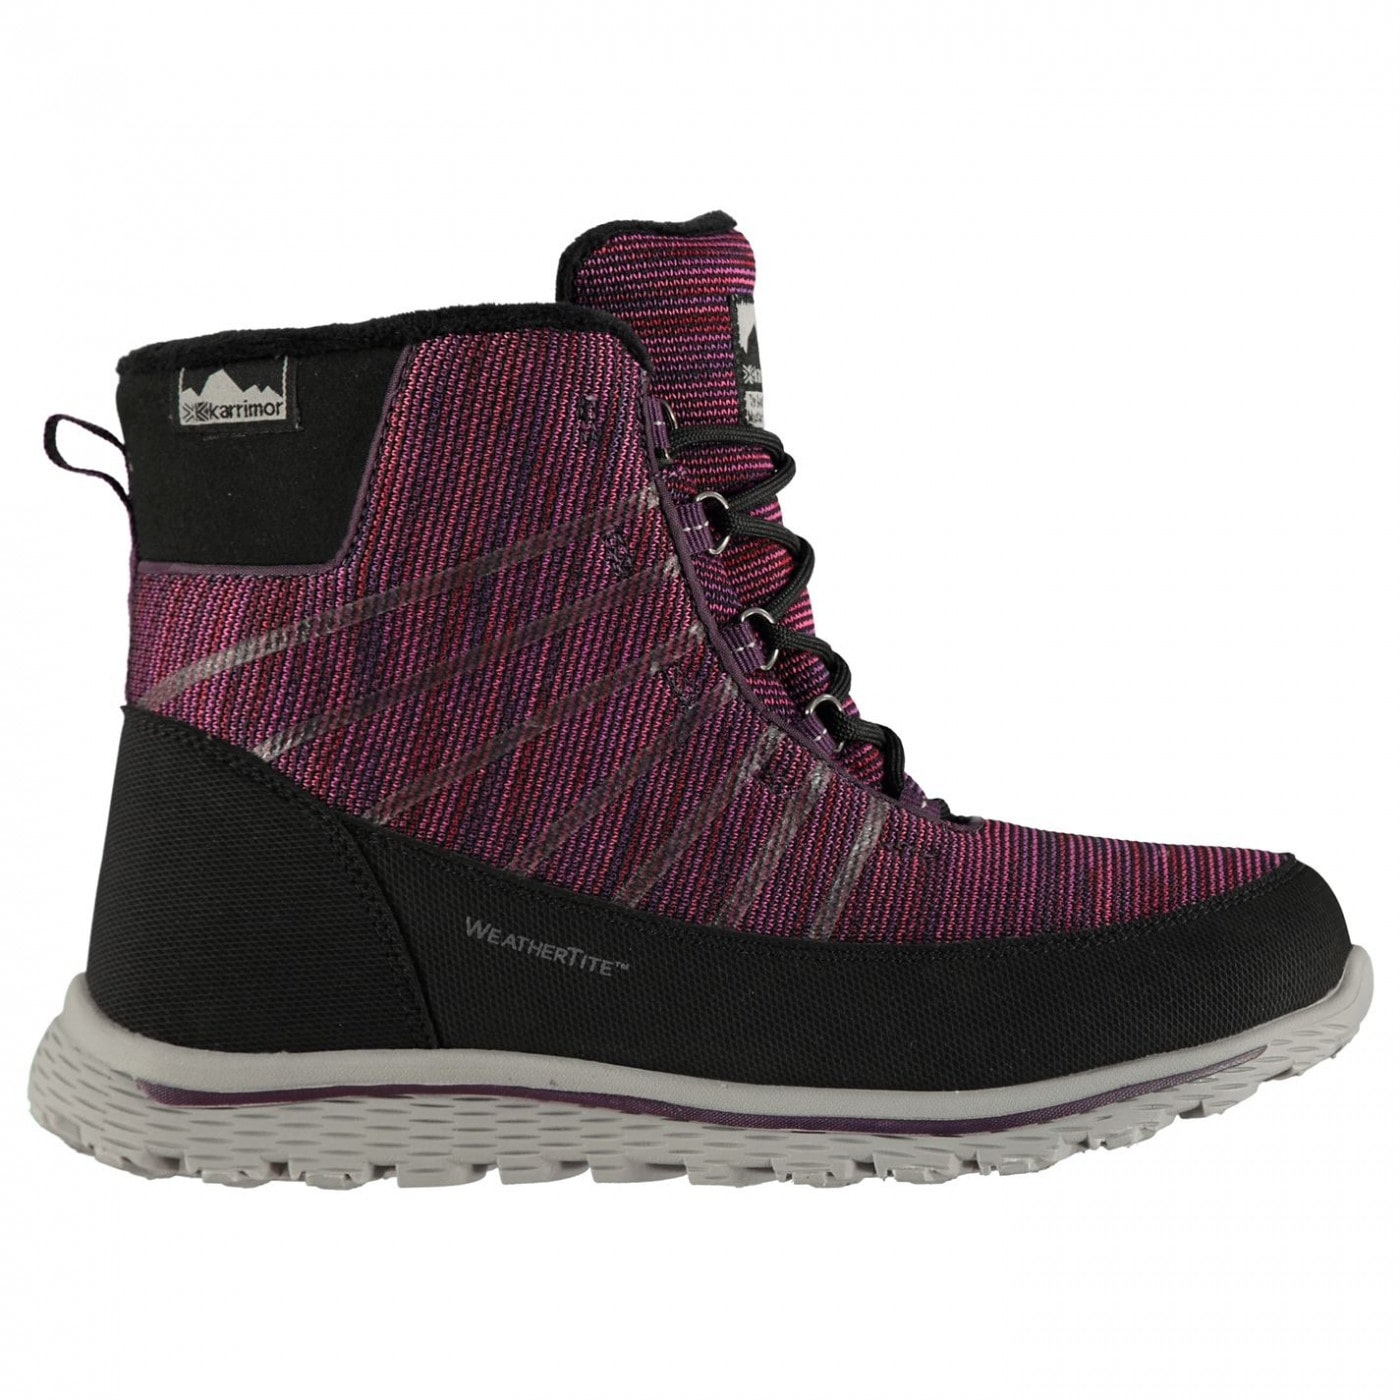 Karrimor Erie Ladies Snow Boots